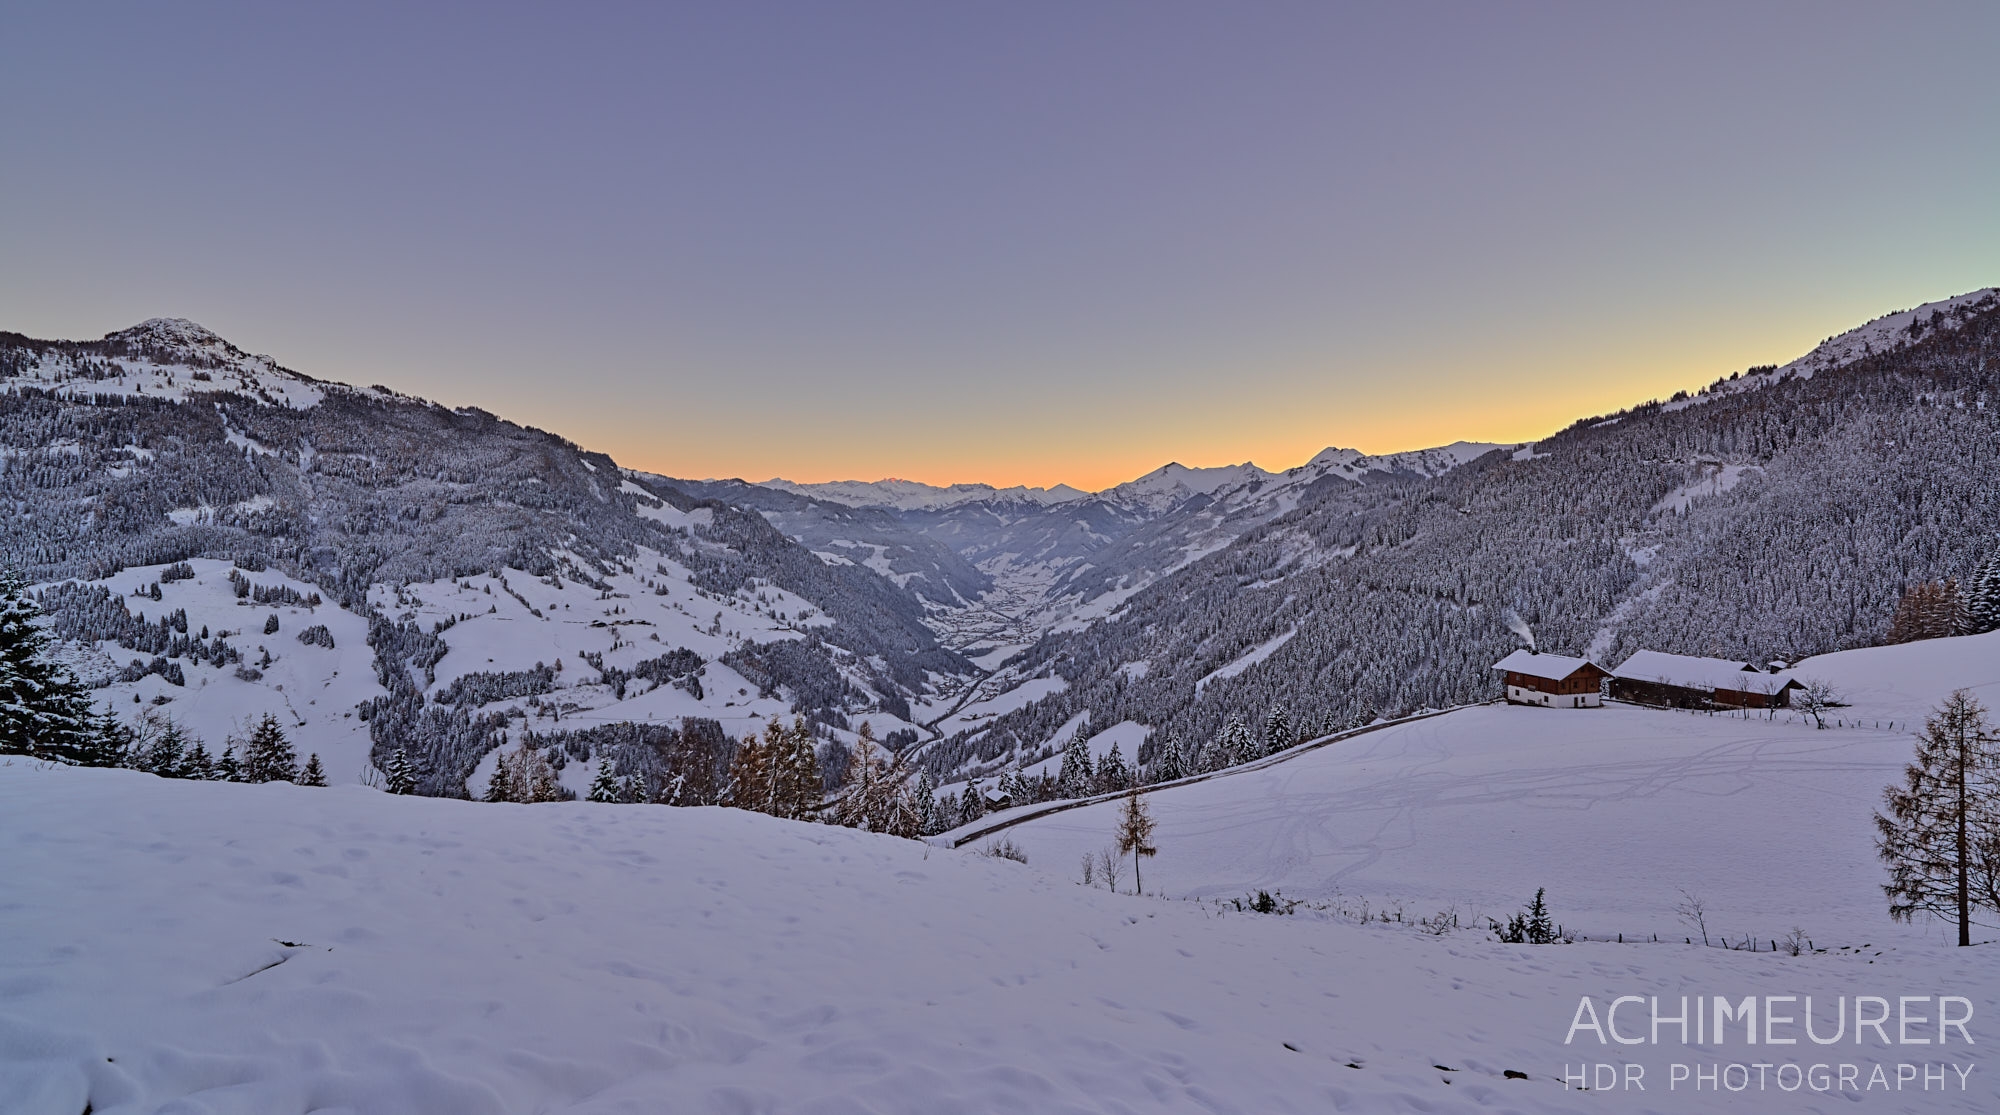 winter-landschaft-sonnenuntergang-grossarl-salzburgerland_7163_hdr by Array.